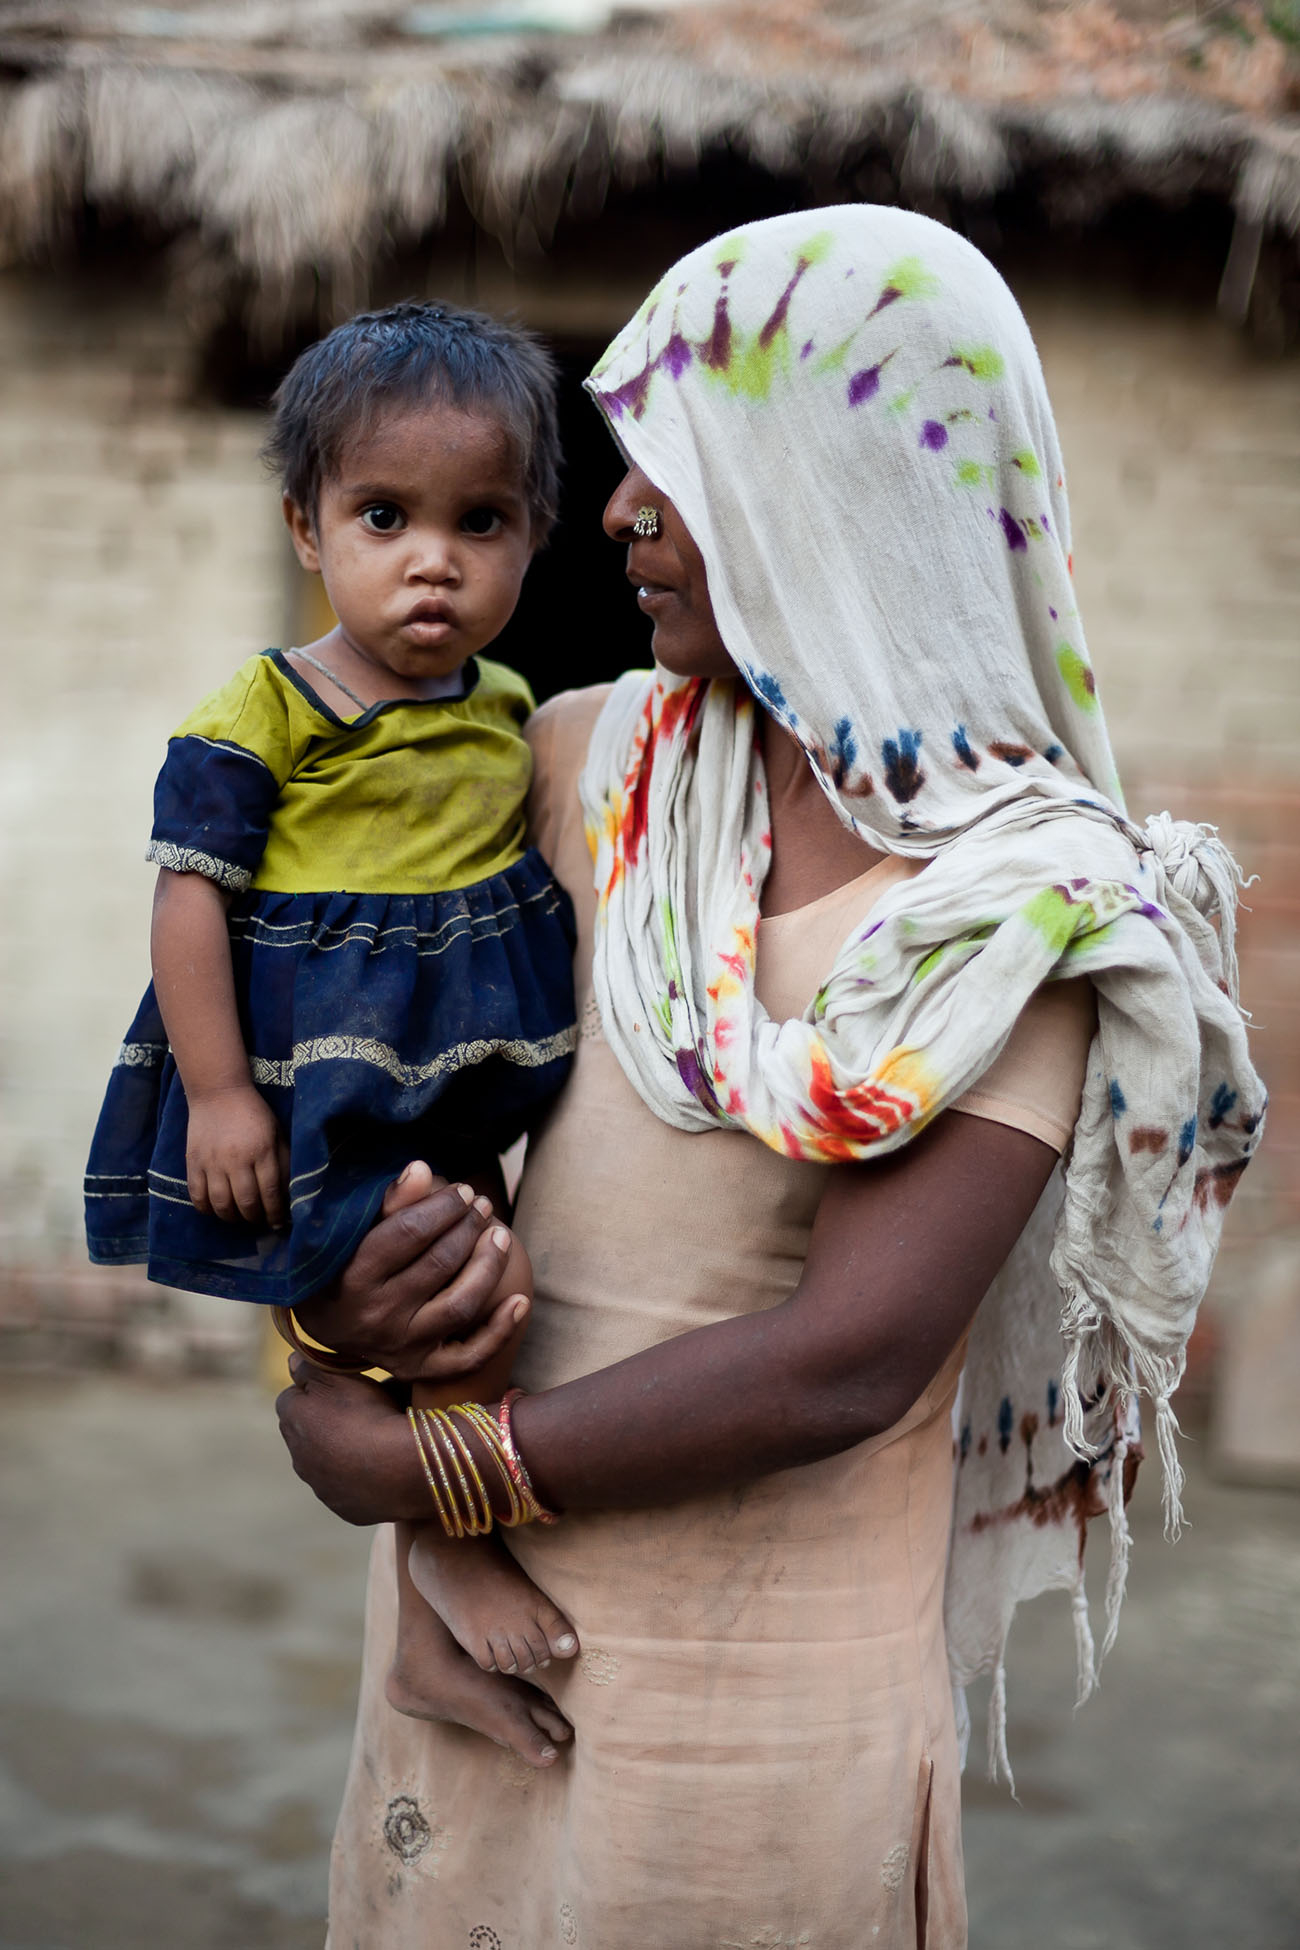 A woman in India holding her child.